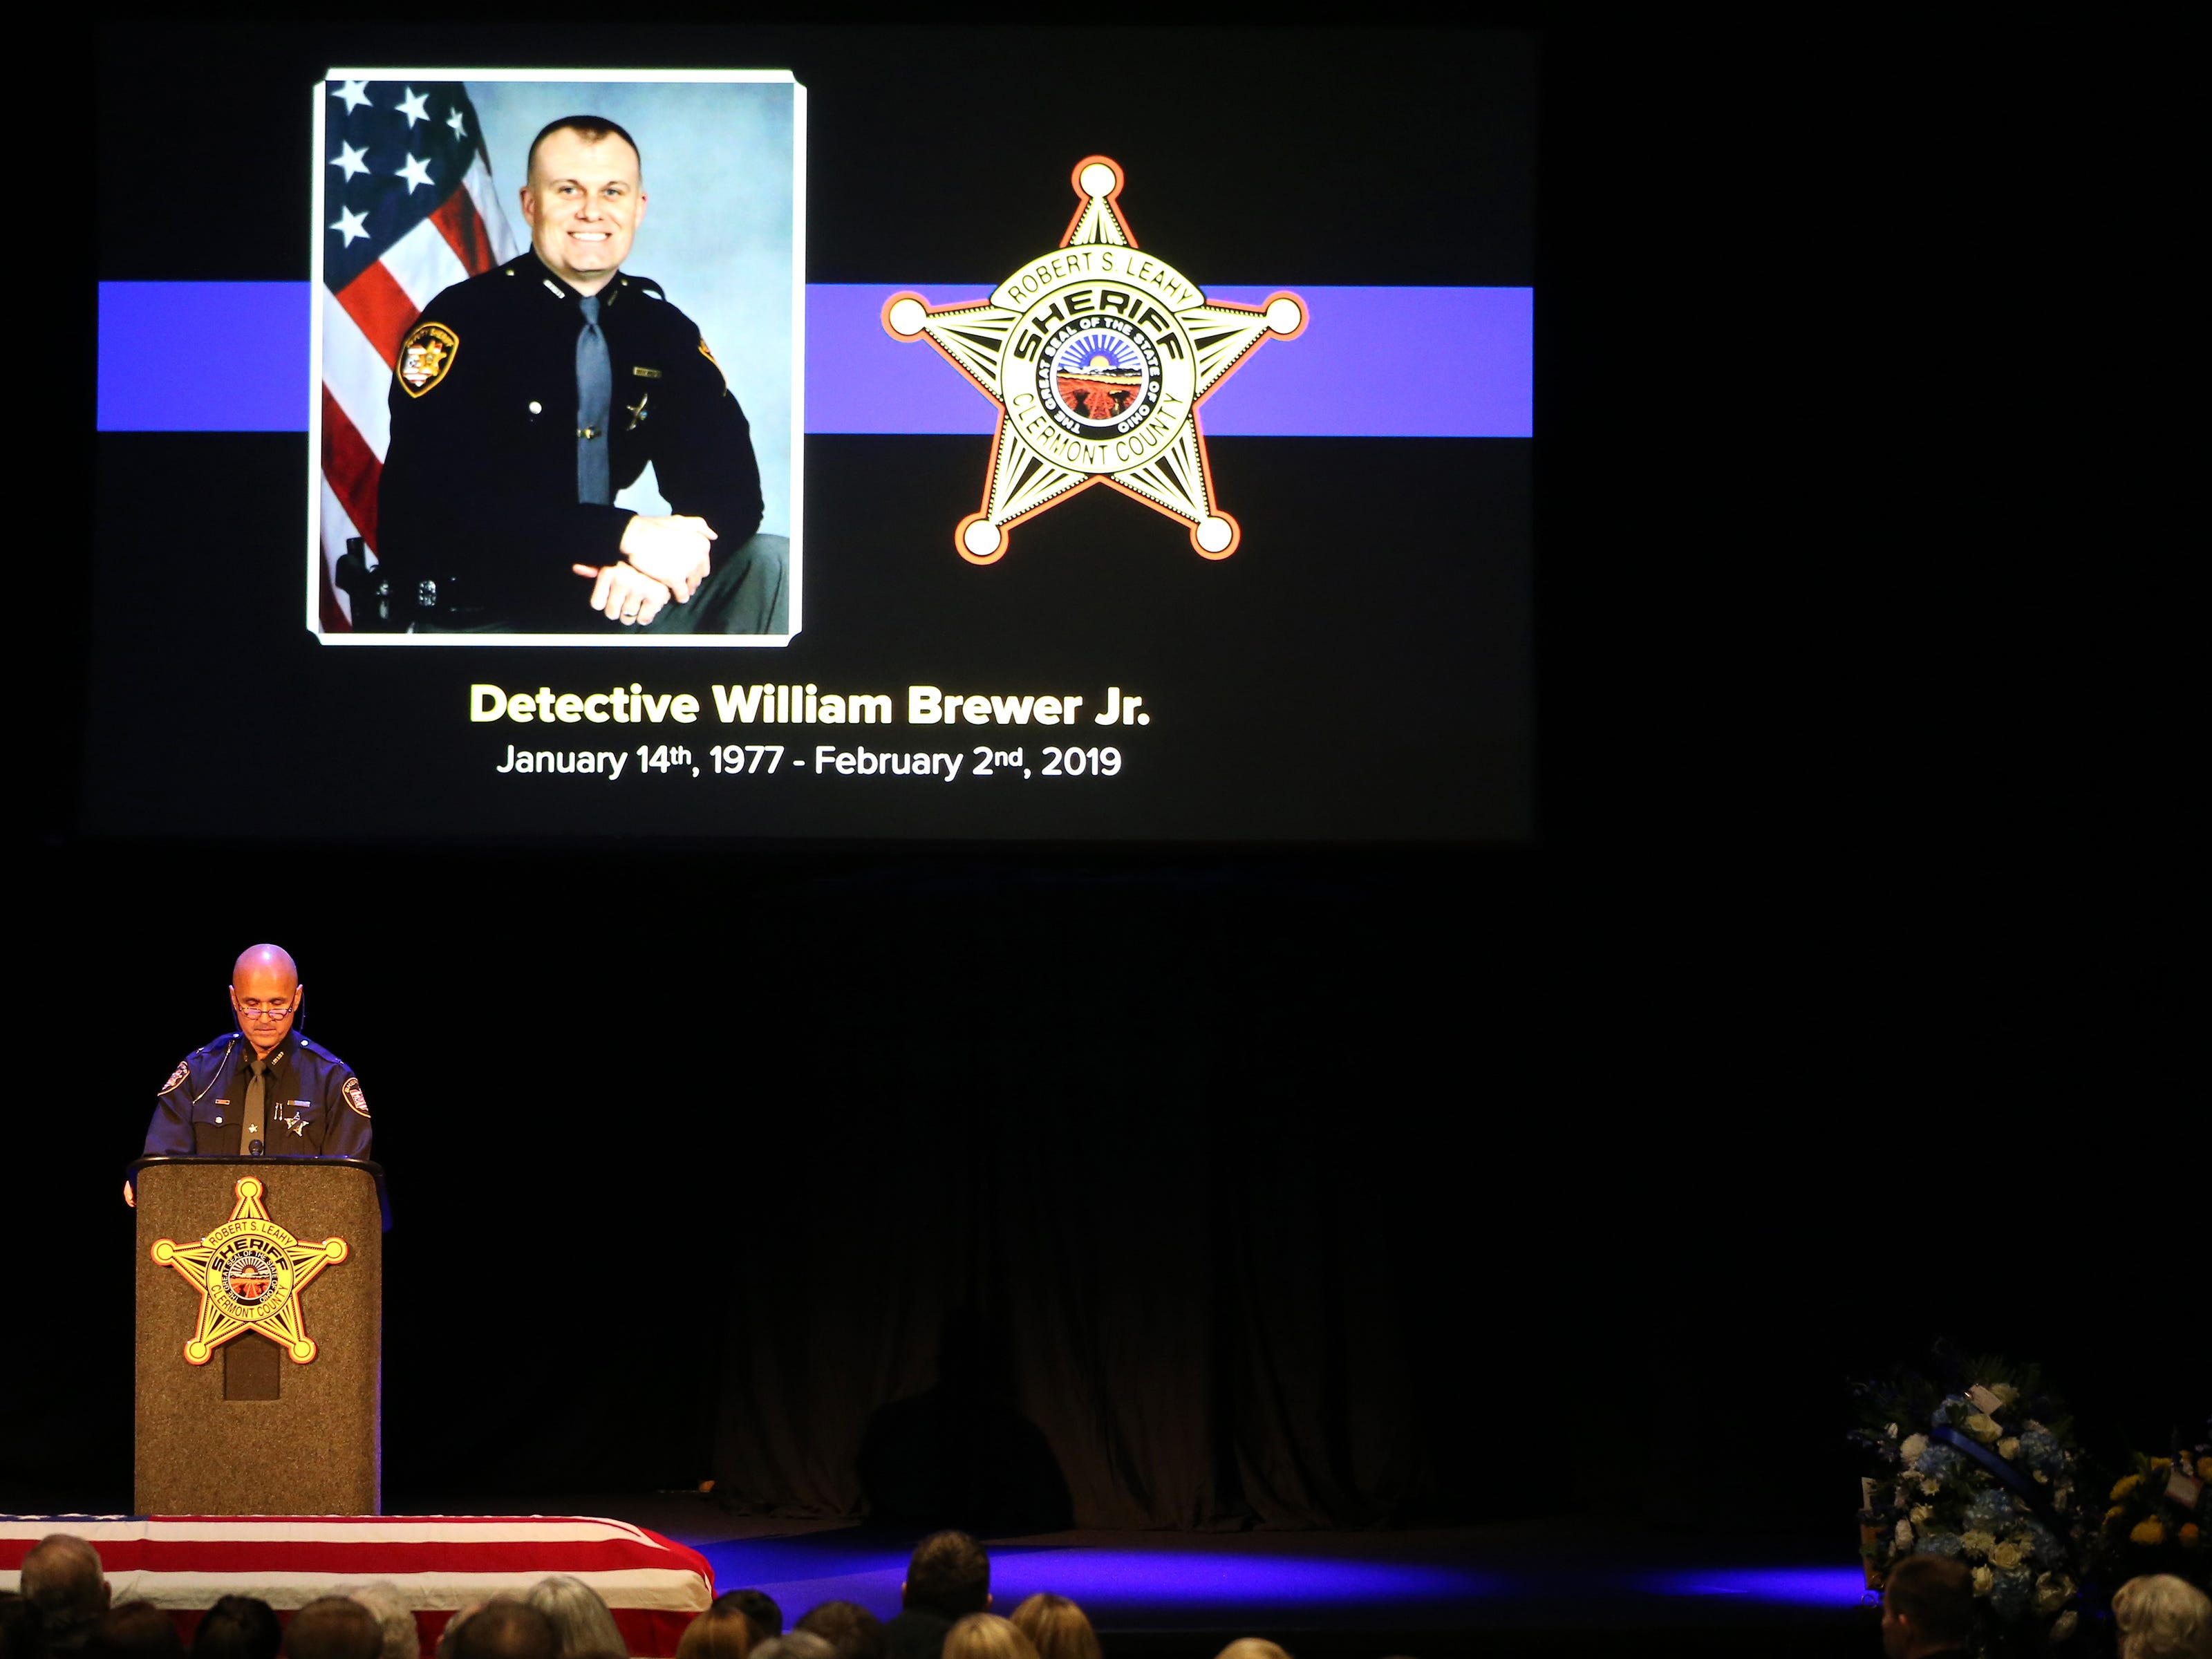 Clermont County Sheriff Robert Leahy delivers remarks during funeral services for Clermont County Sheriff's Detective William Lee Brewer Jr., Friday, Feb. 8, 2019, at Mount Carmel Christian Church in Union Township, Ohio. Brewer, a 20-year veteran of the Clermont County Sheriff's Office, died in the line of duty. He was shot Feb. 2 during a standoff. Brewer, 42, of Pierce Township, is survived by his wife, Jamie, and a 5-year-old son, Braxton. (Kareem Elgazzar/The Cincinnati Enquirer)